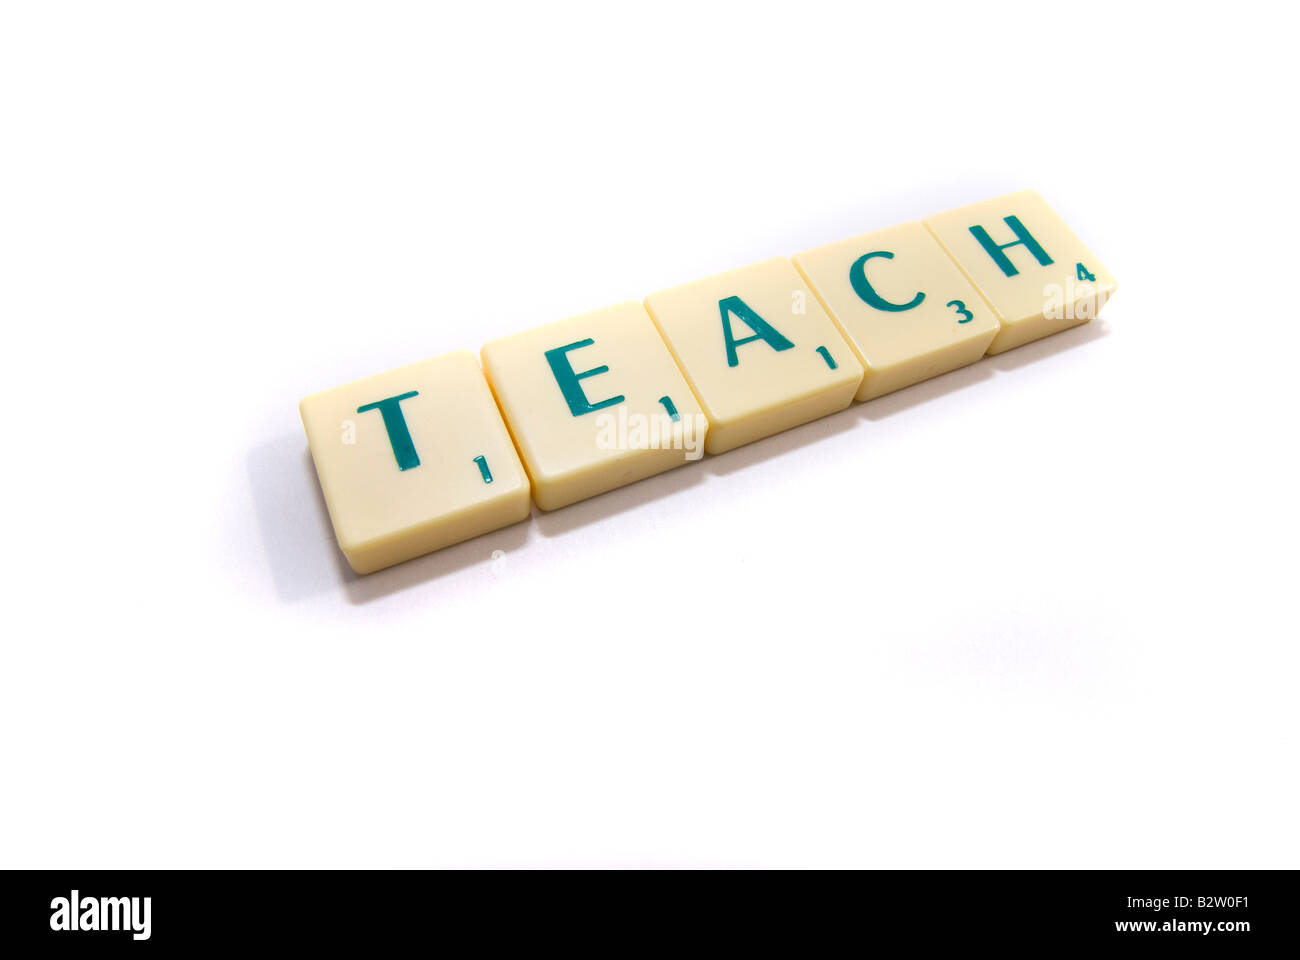 Scrabble pieces spell out the word Teach - Stock Image